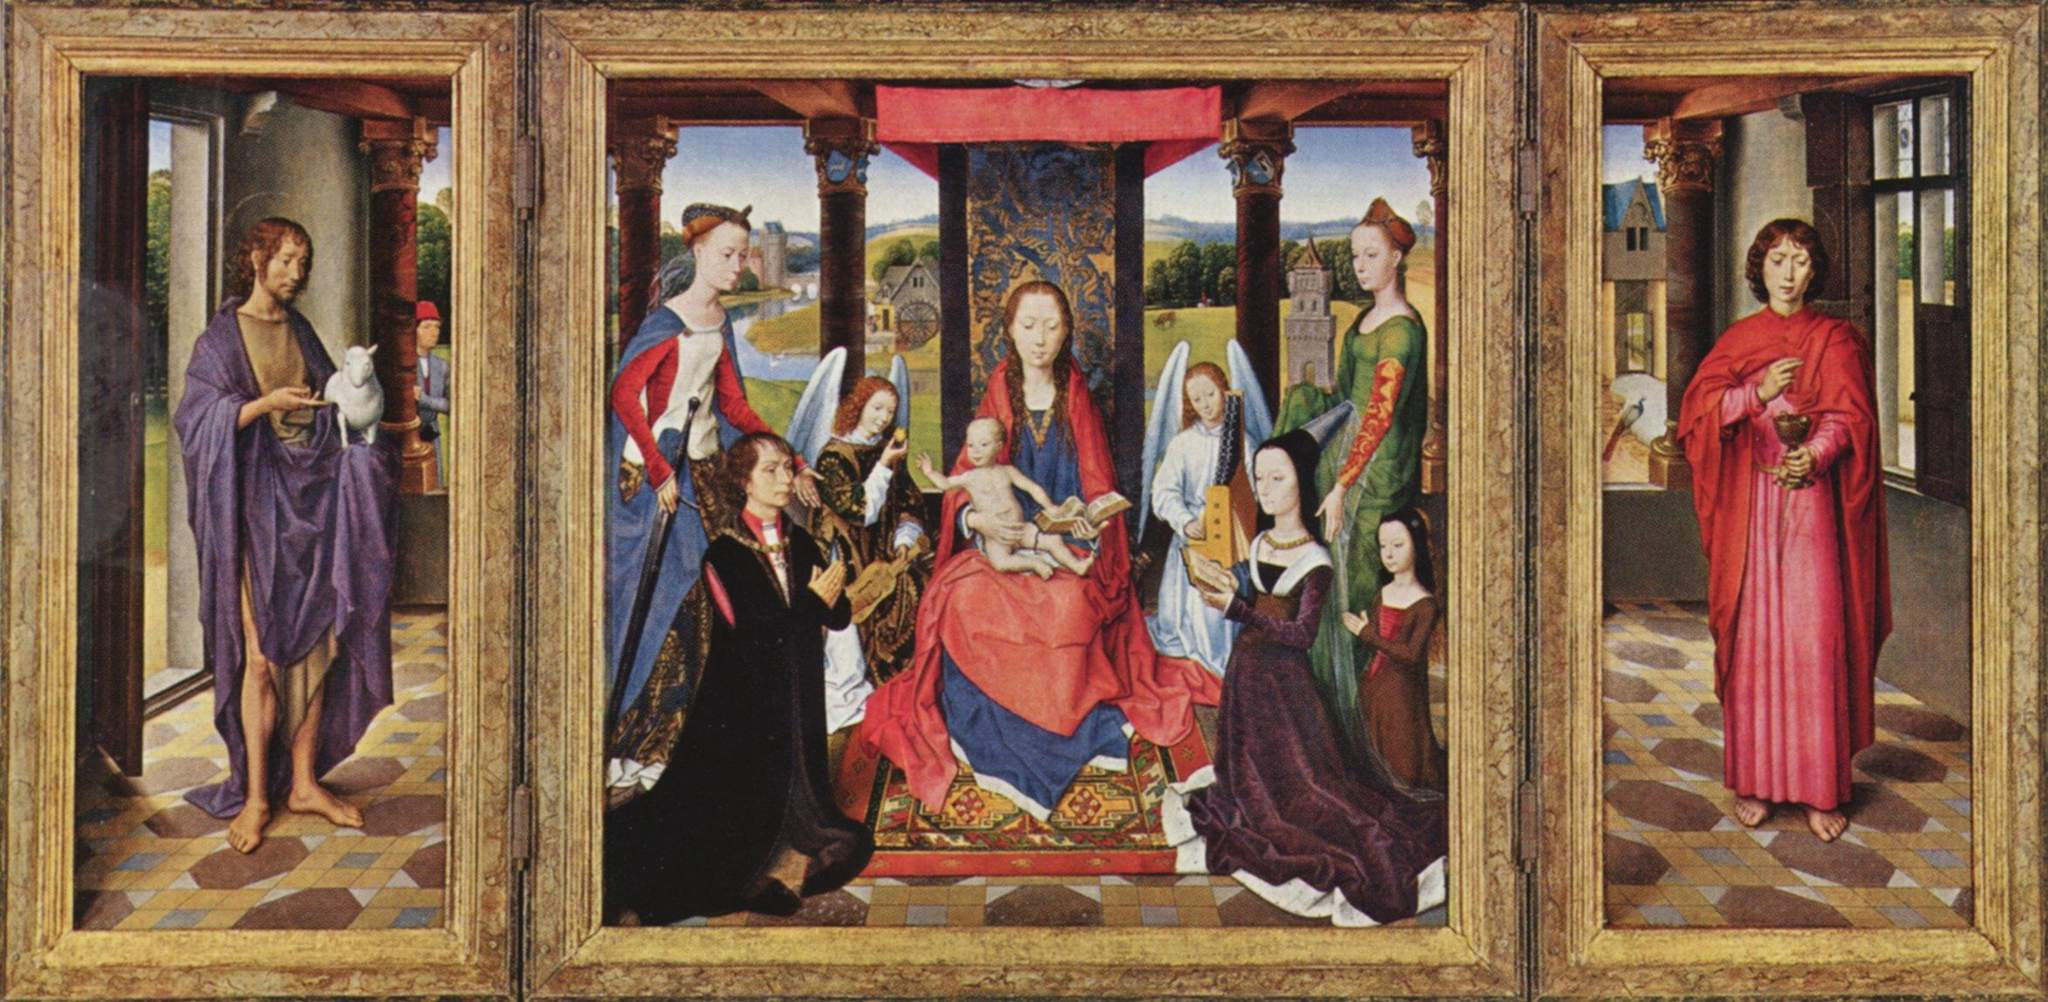 a visual analysis of the altarpiece the virgin and child with saints francis andrew paul peter steph